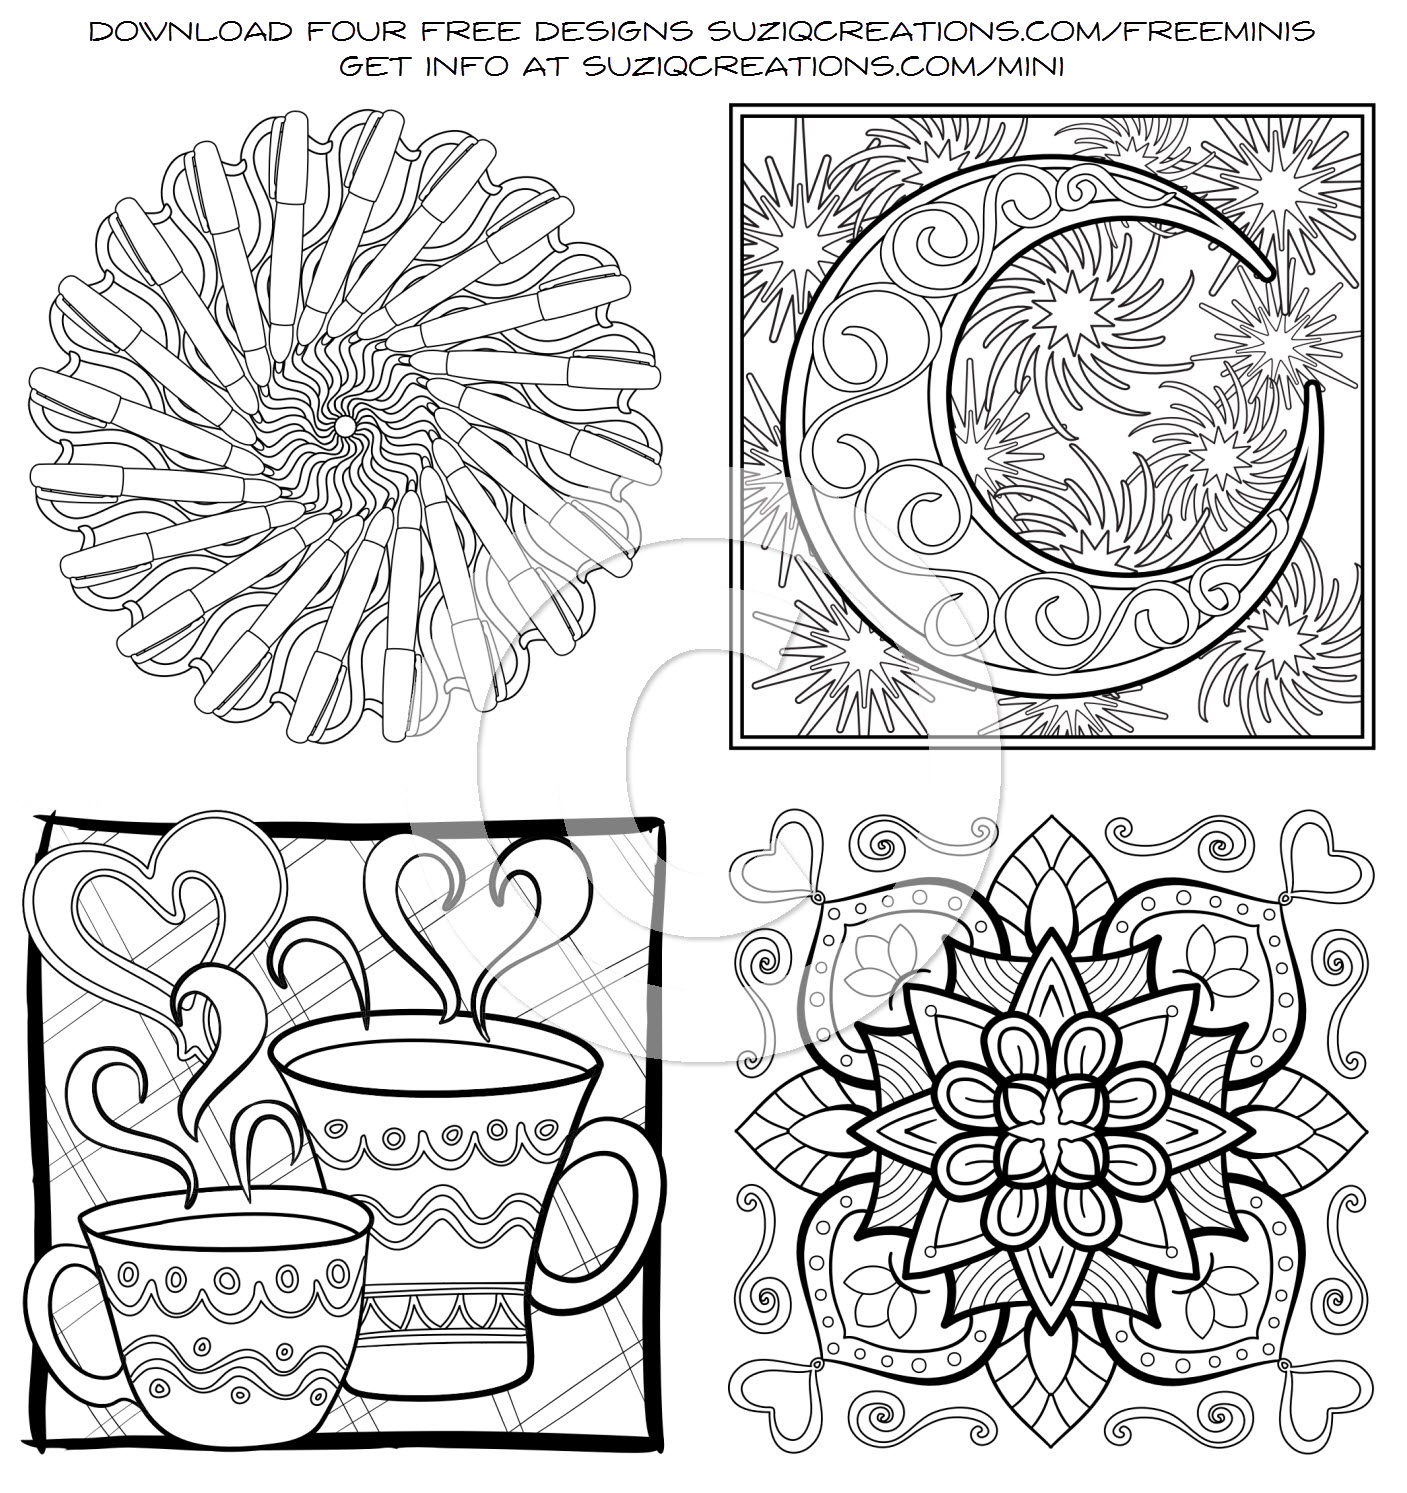 minimentals on the go coloring book sampler